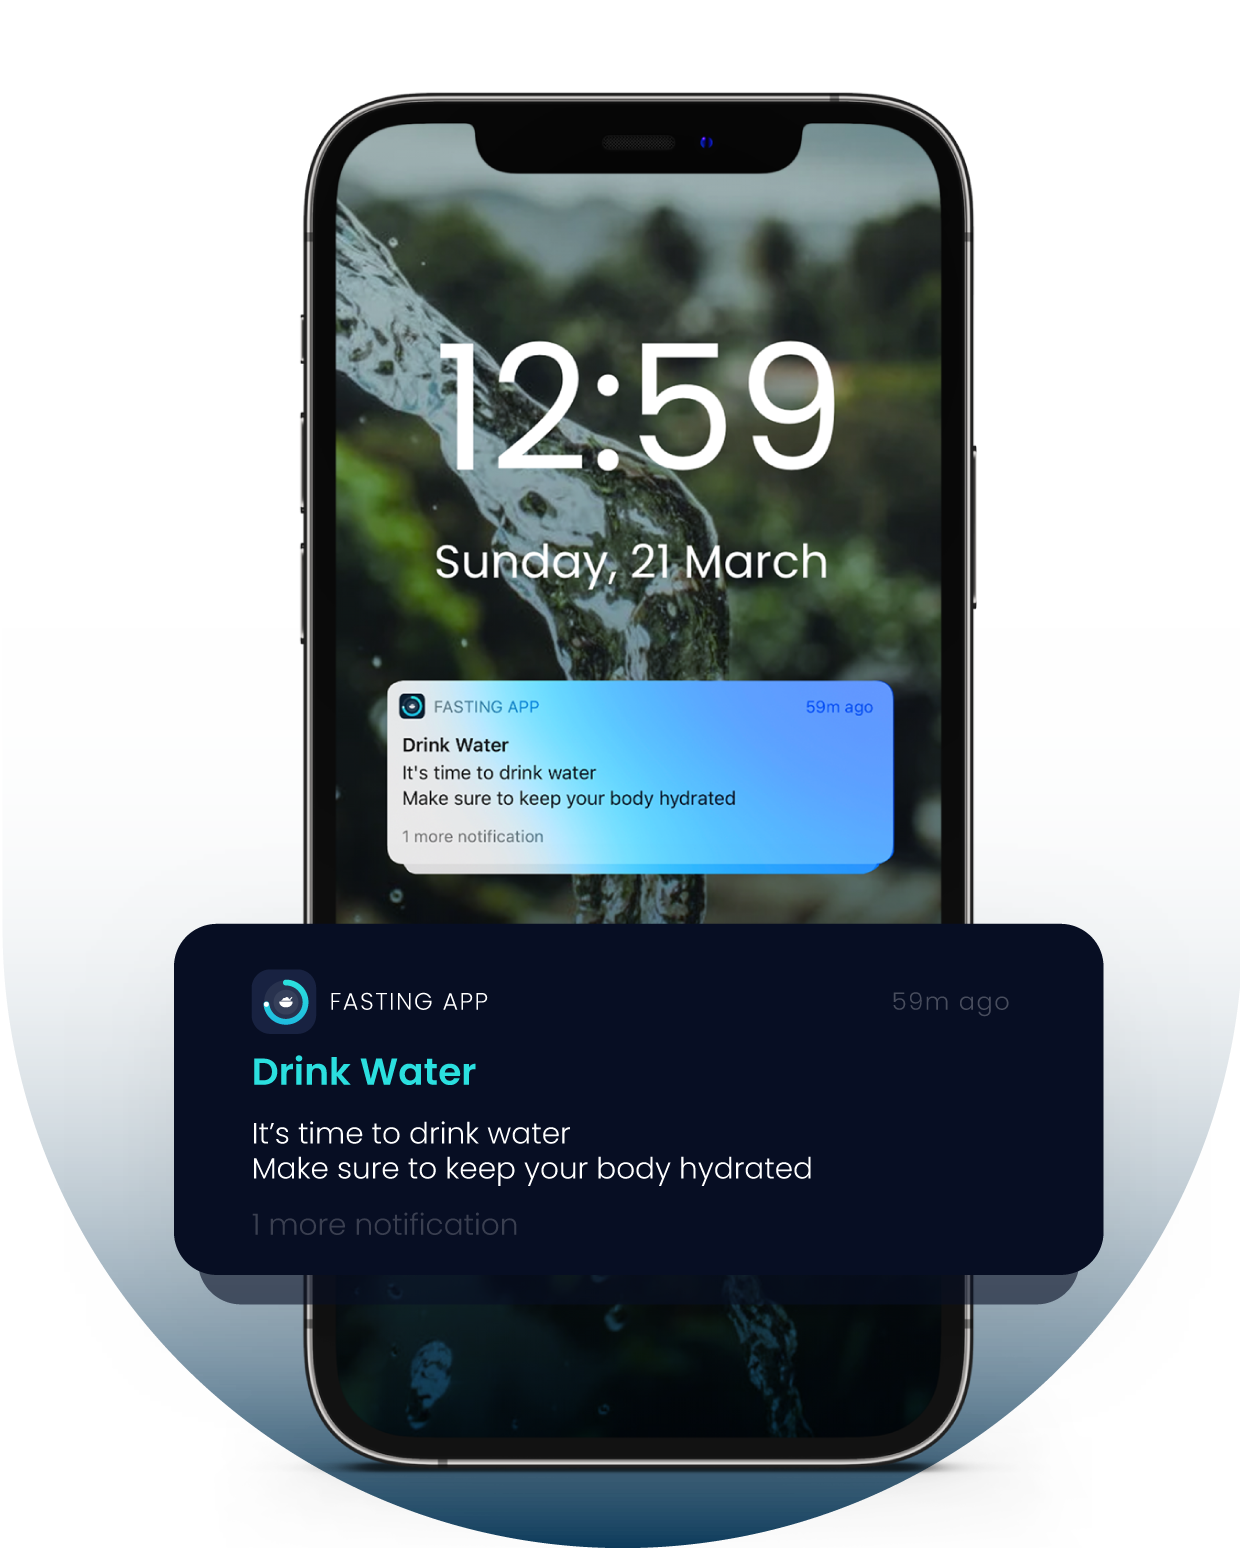 Drink Water Notification from Water Drinking Assistant of Fasting App